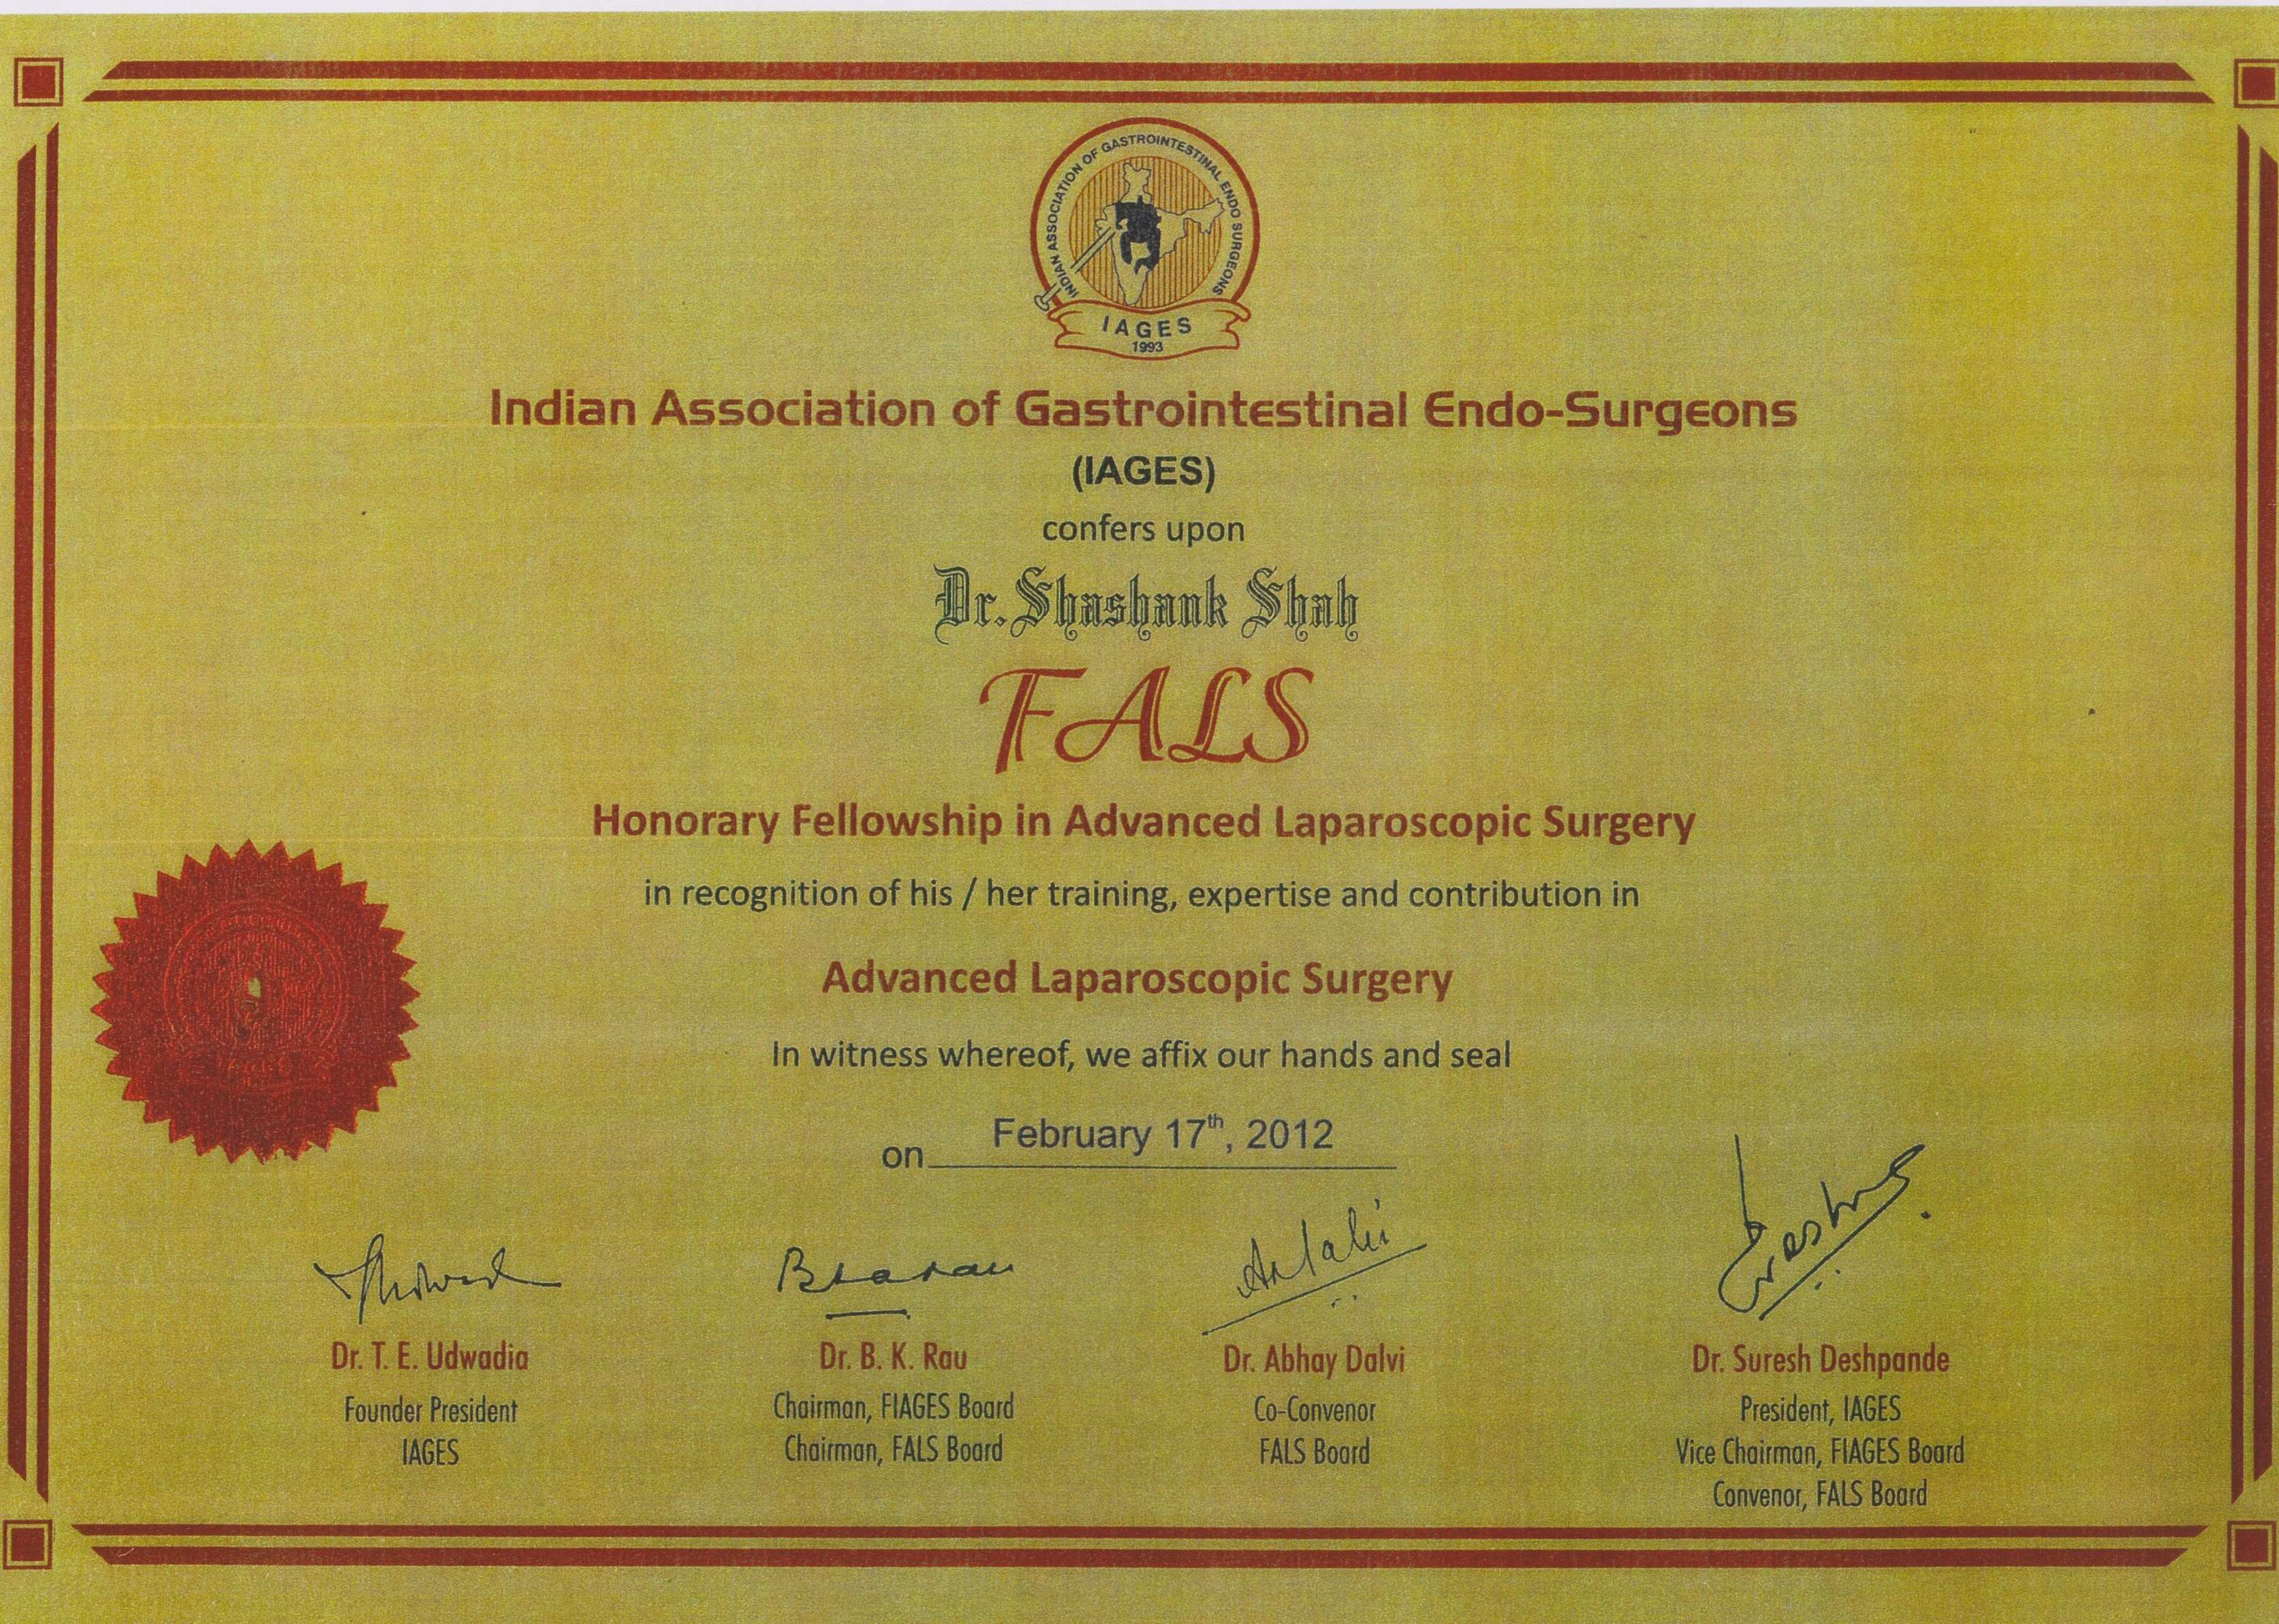 Dr Shashank Shah was conferred the Honorary Fellowship in Advanced Laparoscopic Surgery (FALS) by the Indian Association of Gastrointestinal Endo Surgeons (IAGES) in 2012.